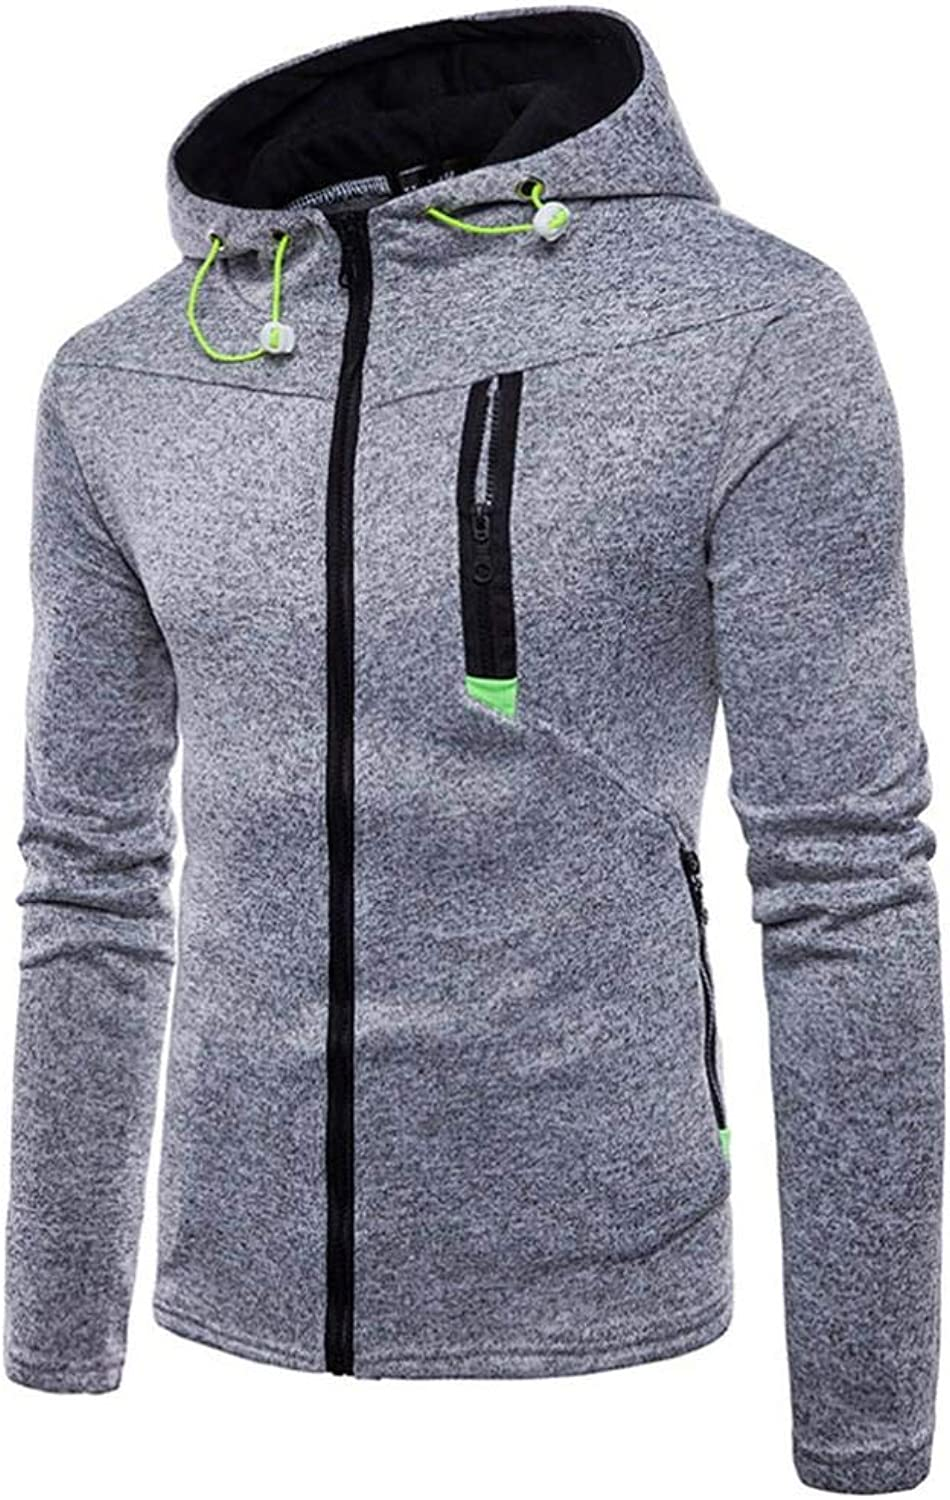 Men's Long Sleeve Zipper Hoodie Sweatshirt Top Tee Outwear Blouse Fashion Cosy Wild Tight Super Quality Grey bluee Black for Mens (color   grey, Size   XL)